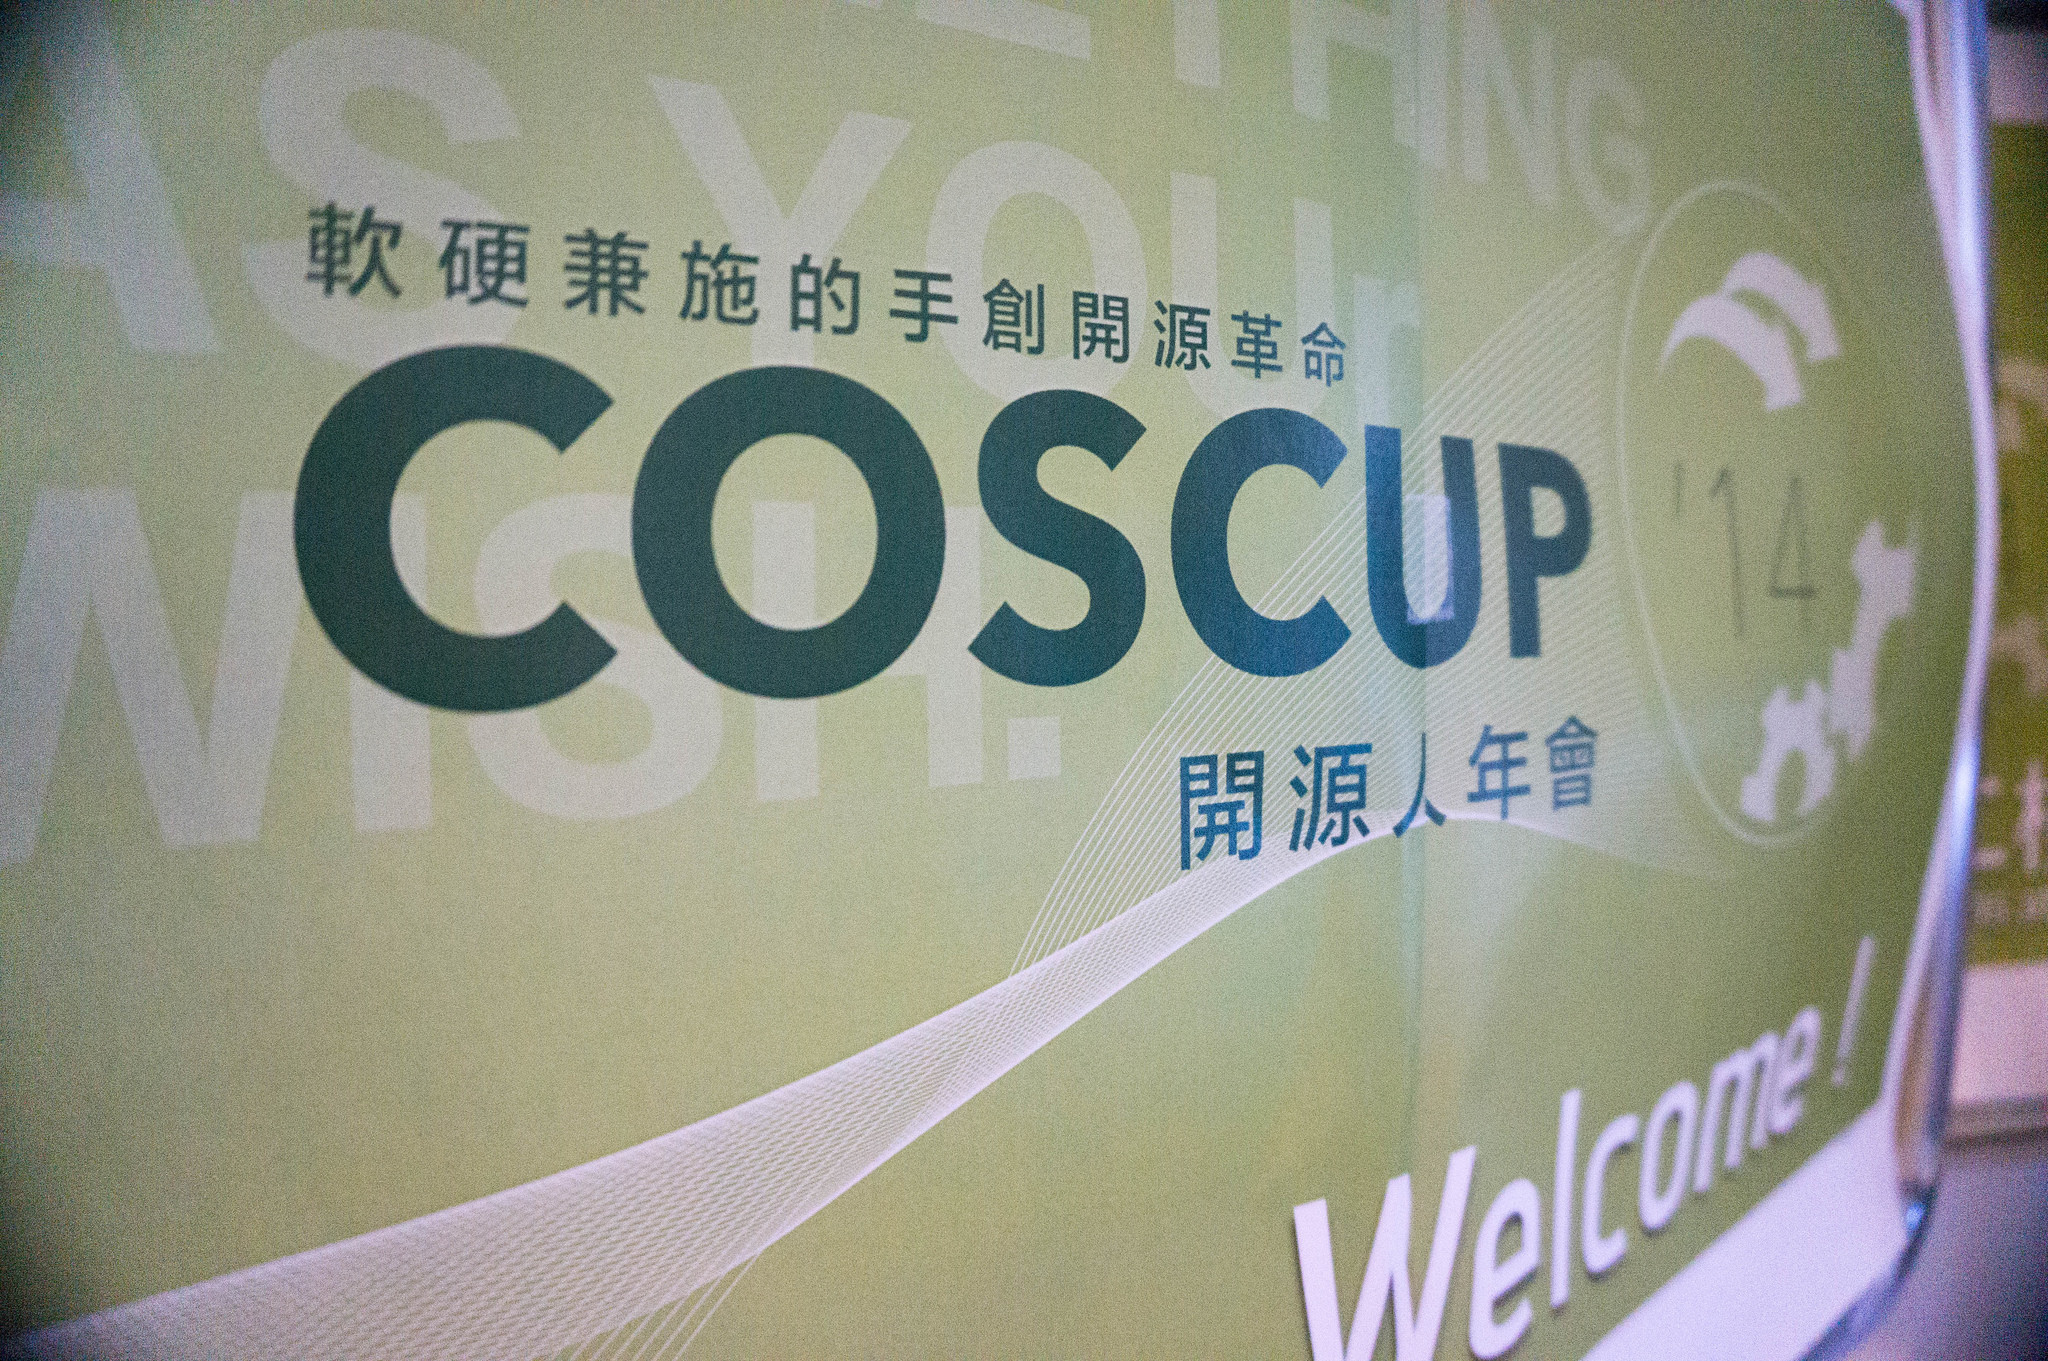 COSCUP 2016 Call for Presentations